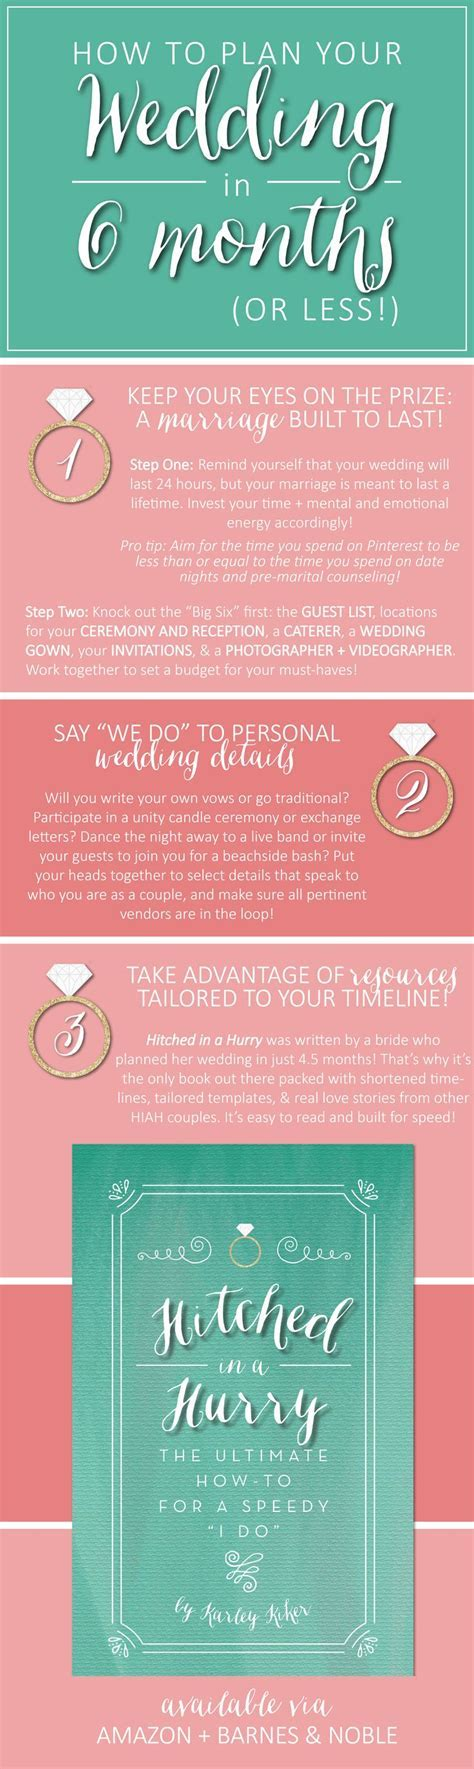 1651 best images about Wedding Ideas on Pinterest